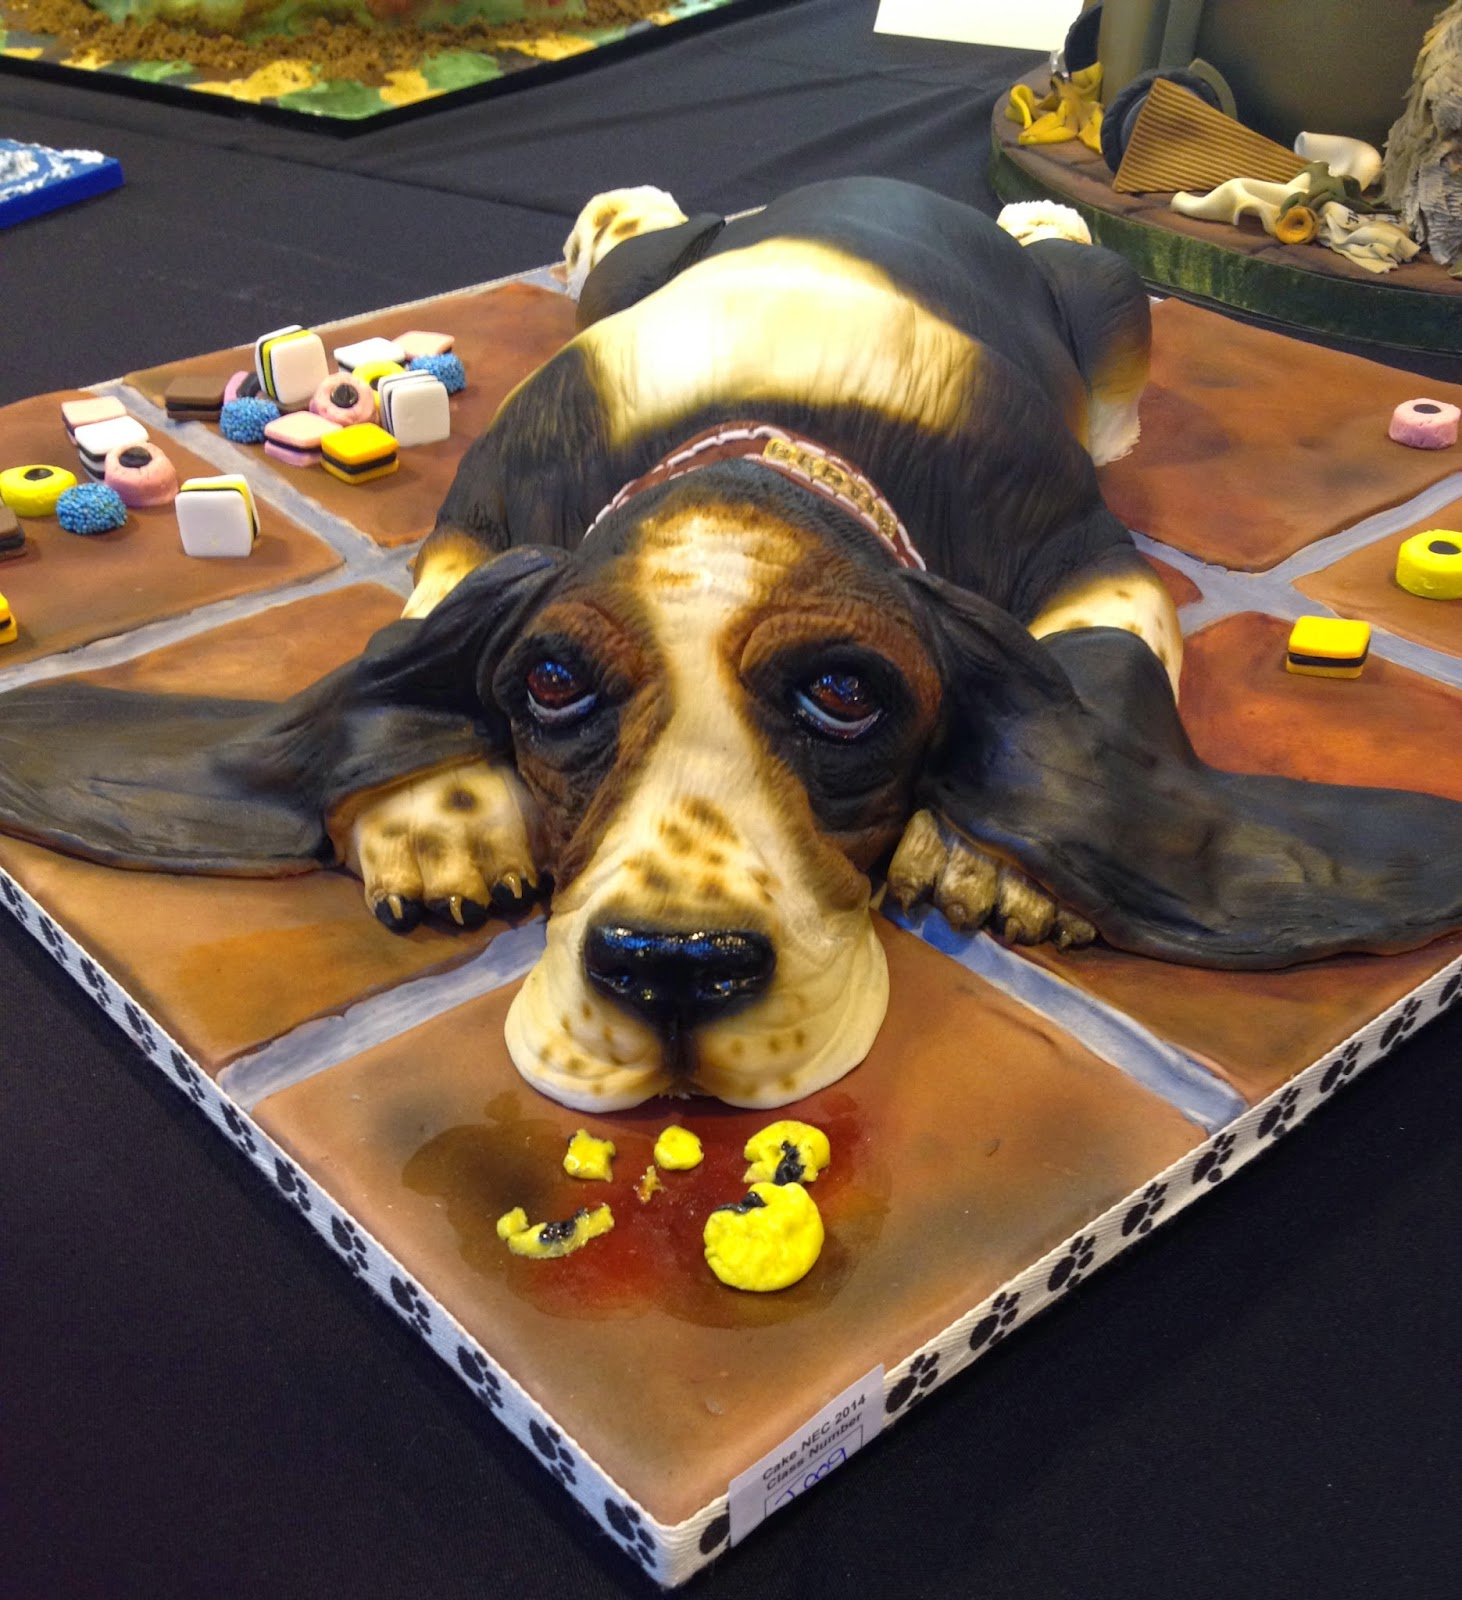 Dog Cake with sweets